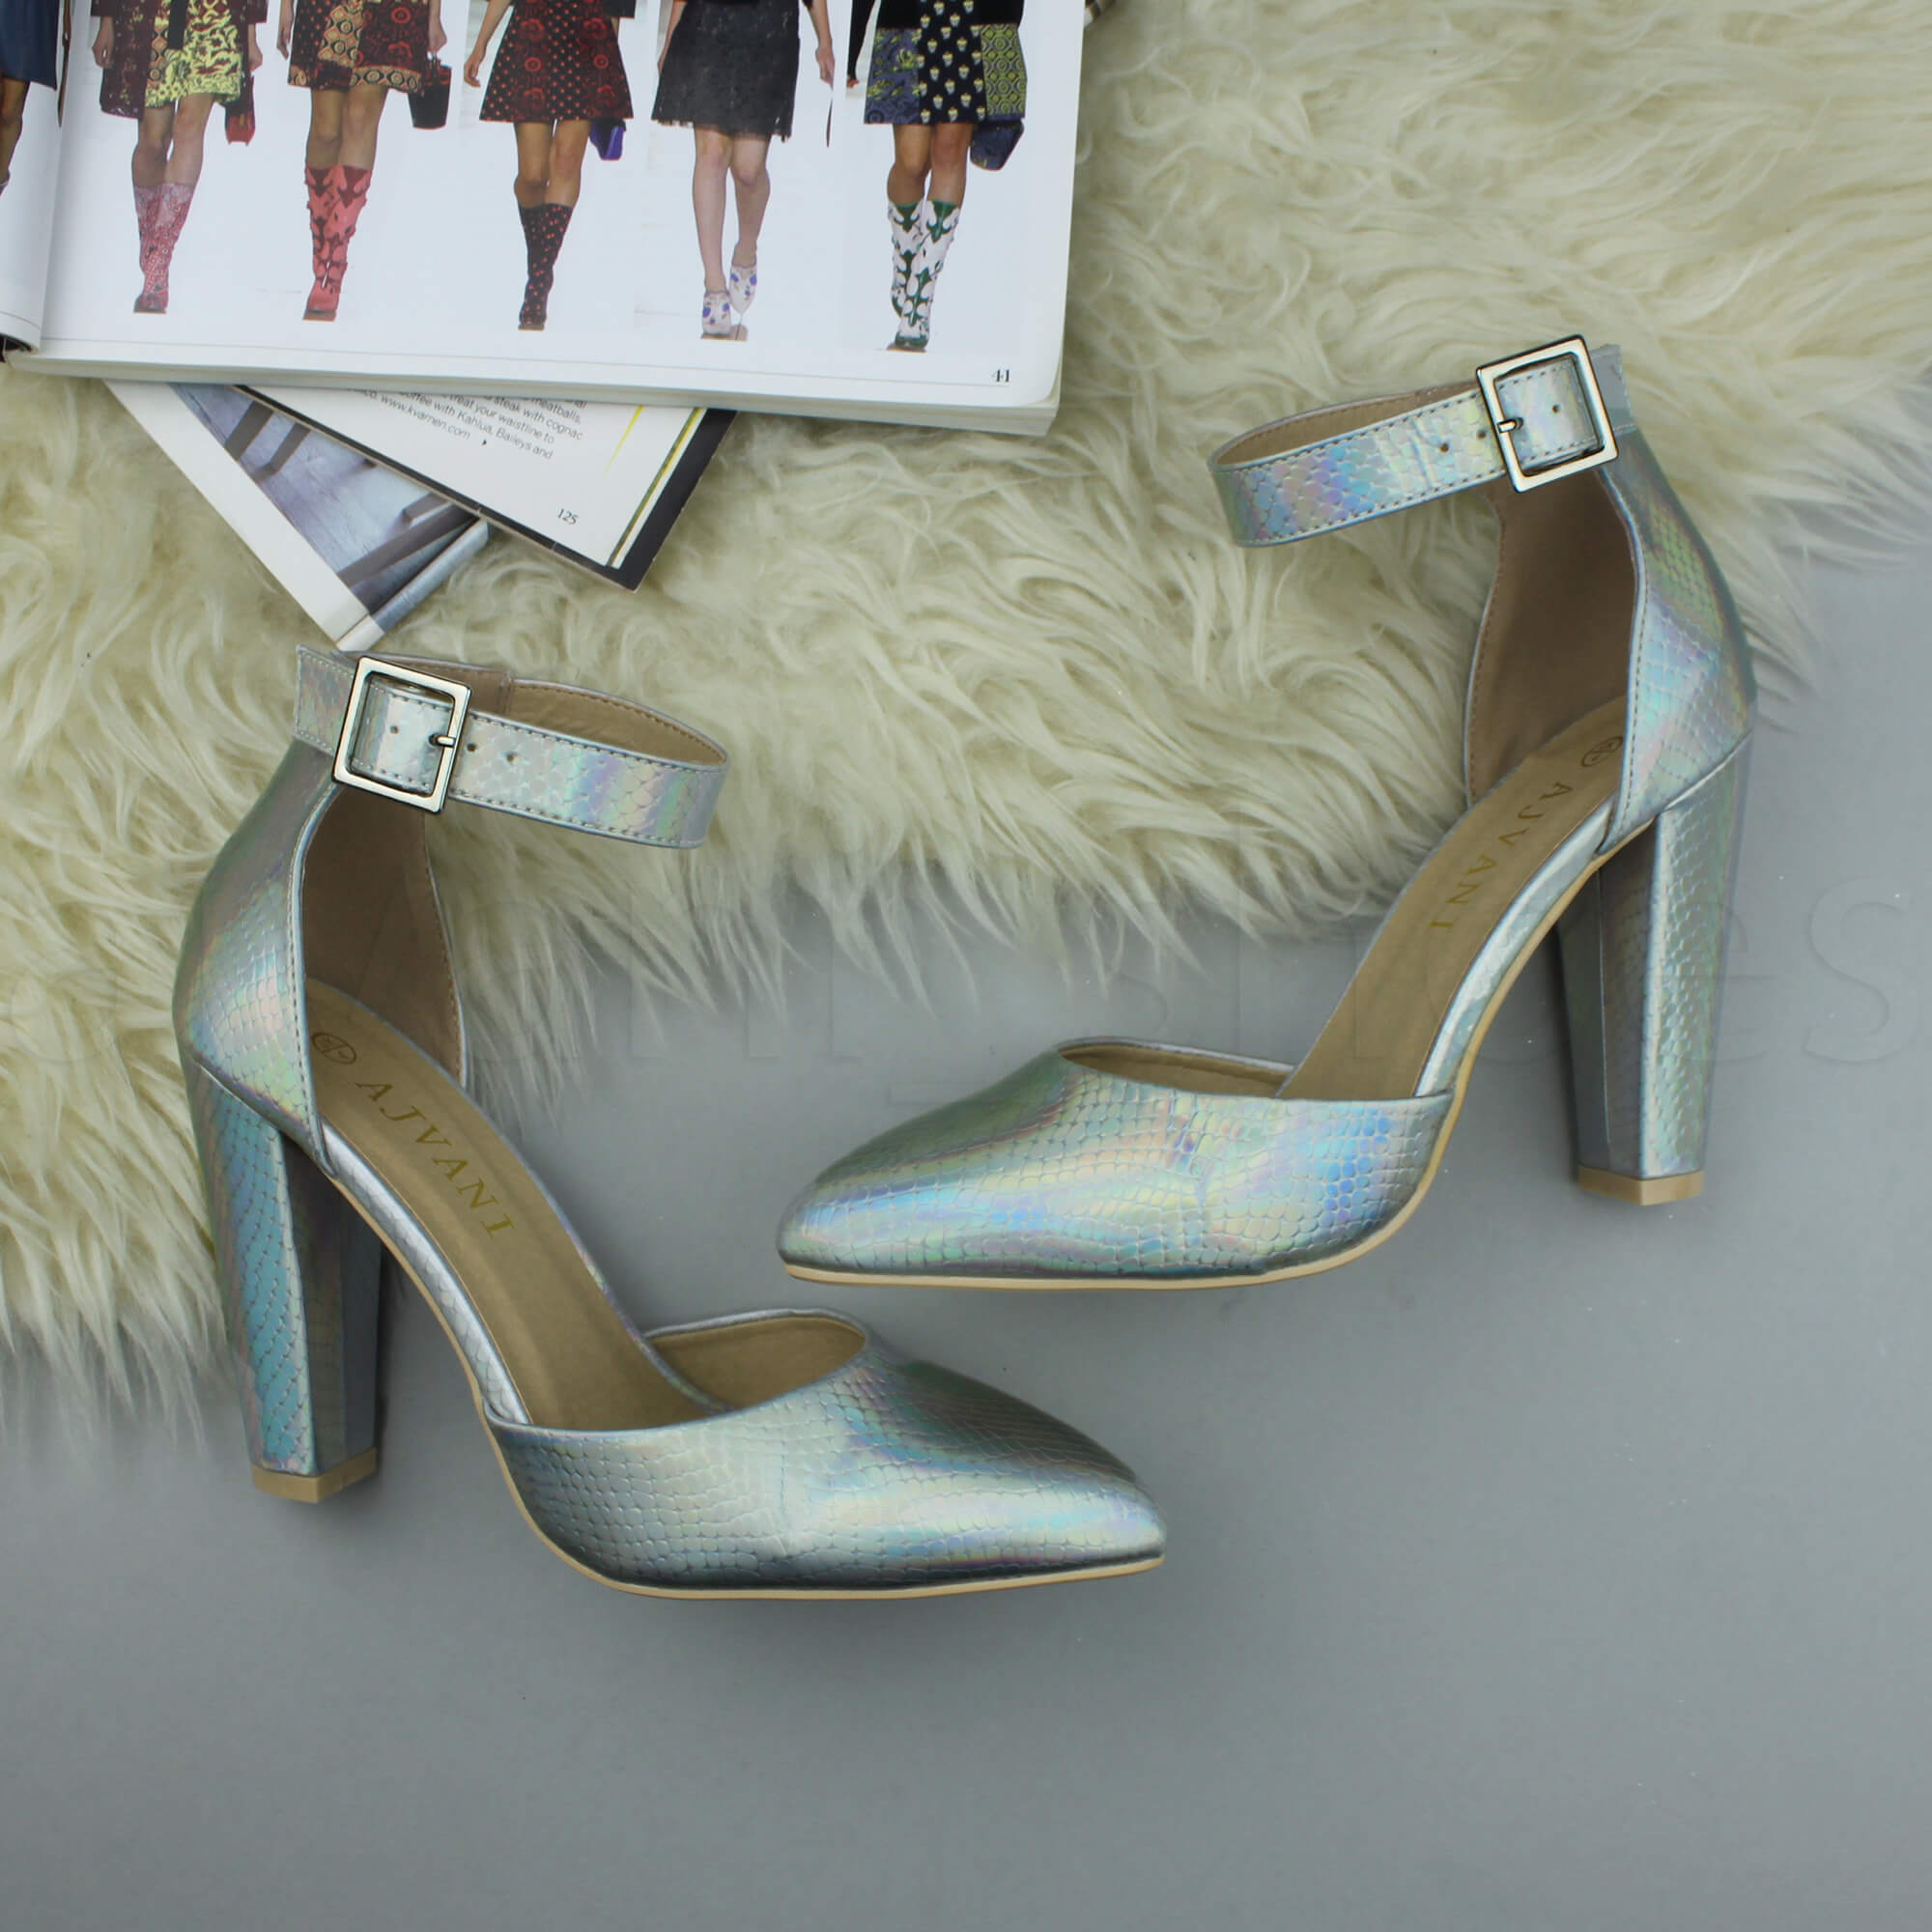 WOMENS-LADIES-HIGH-BLOCK-HEEL-ANKLE-STRAP-BUCKLE-POINTED-COURT-SHOES-SIZE thumbnail 166